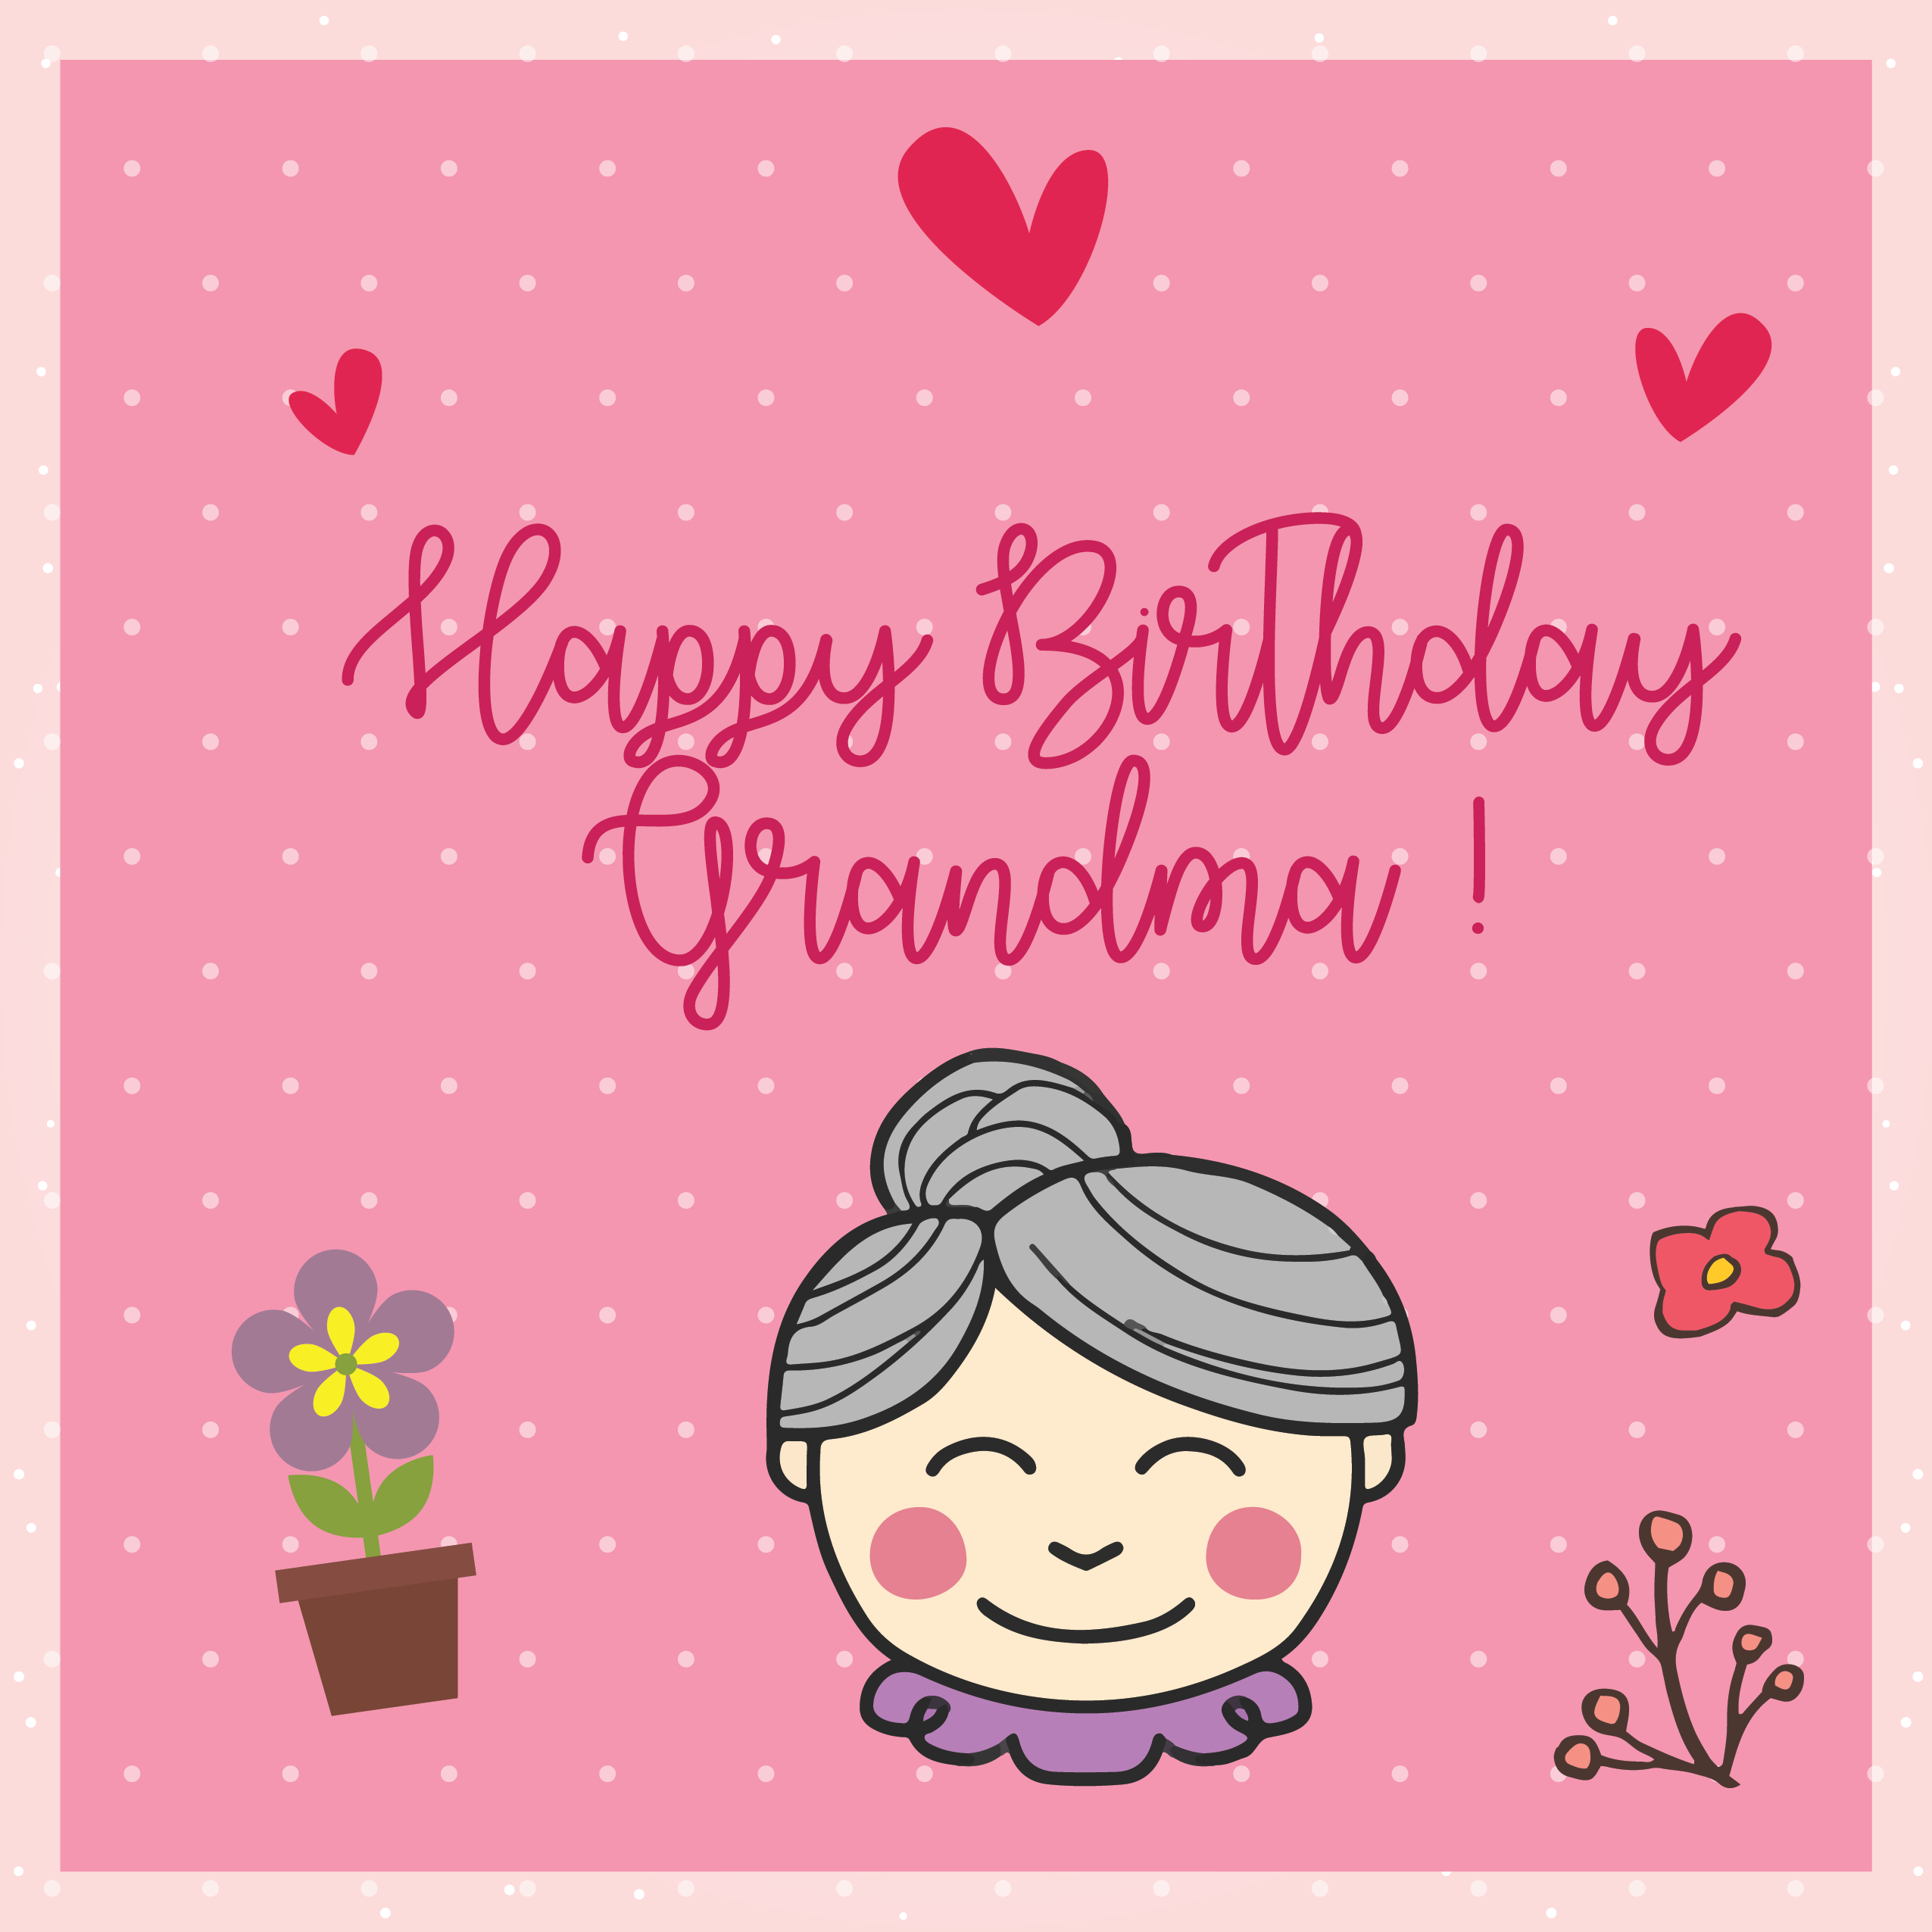 200 happy birthday wishes quotes with funny cute images happy birthday wishes grandma3 kristyandbryce Image collections